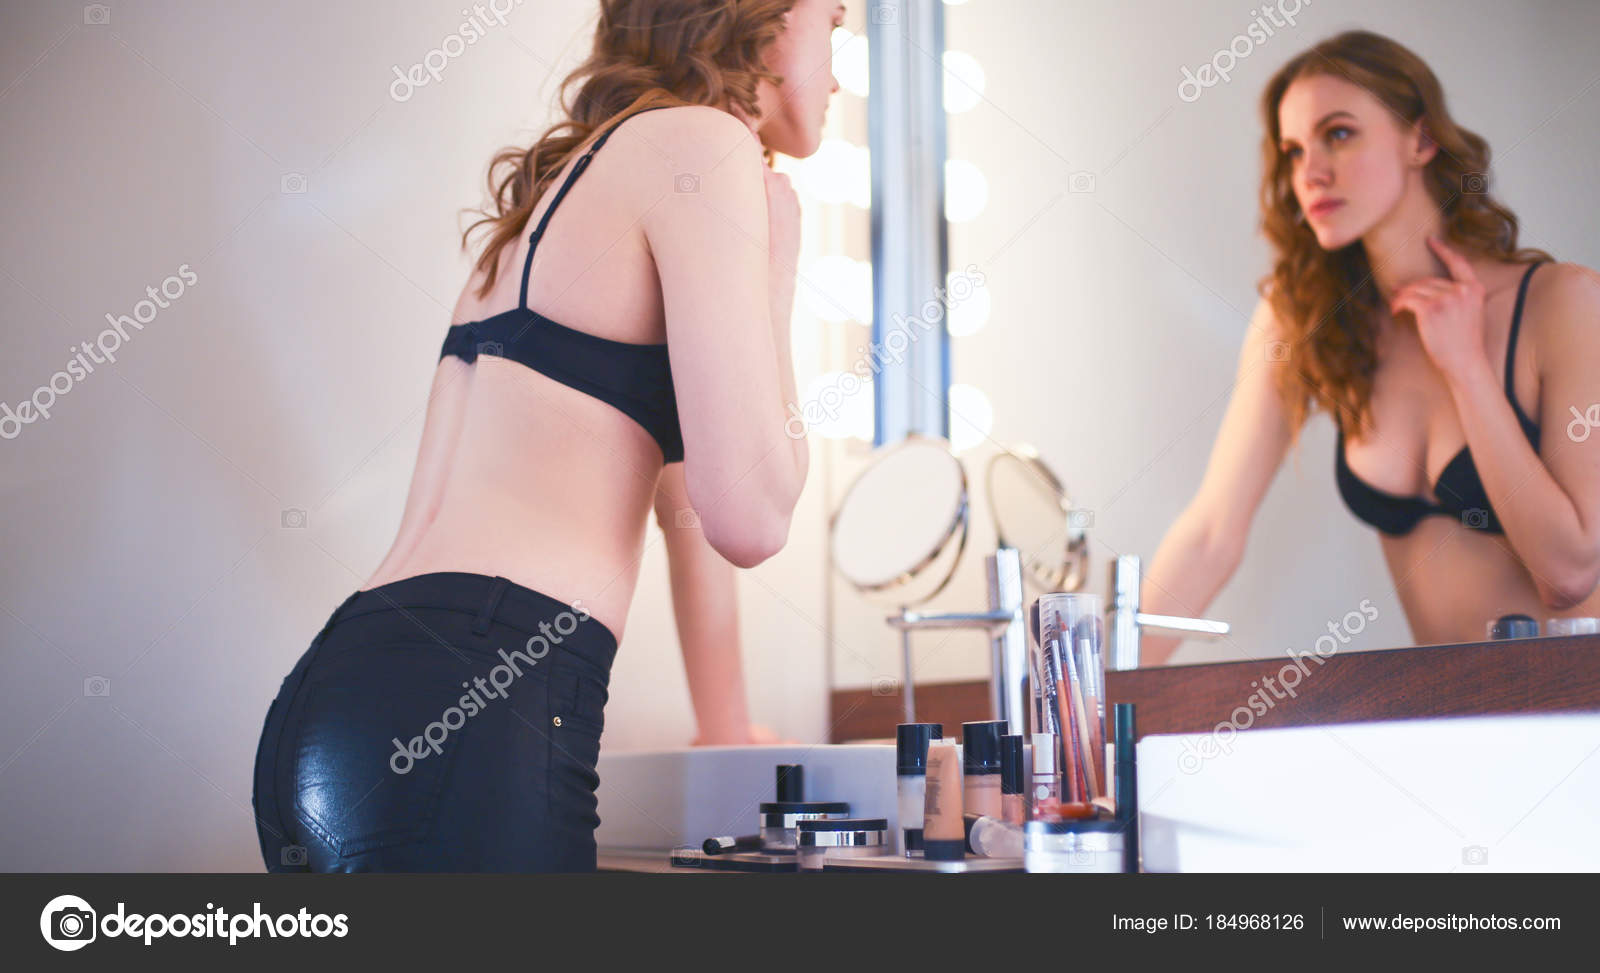 Erotic pictures of women looking in mirrors opinion you